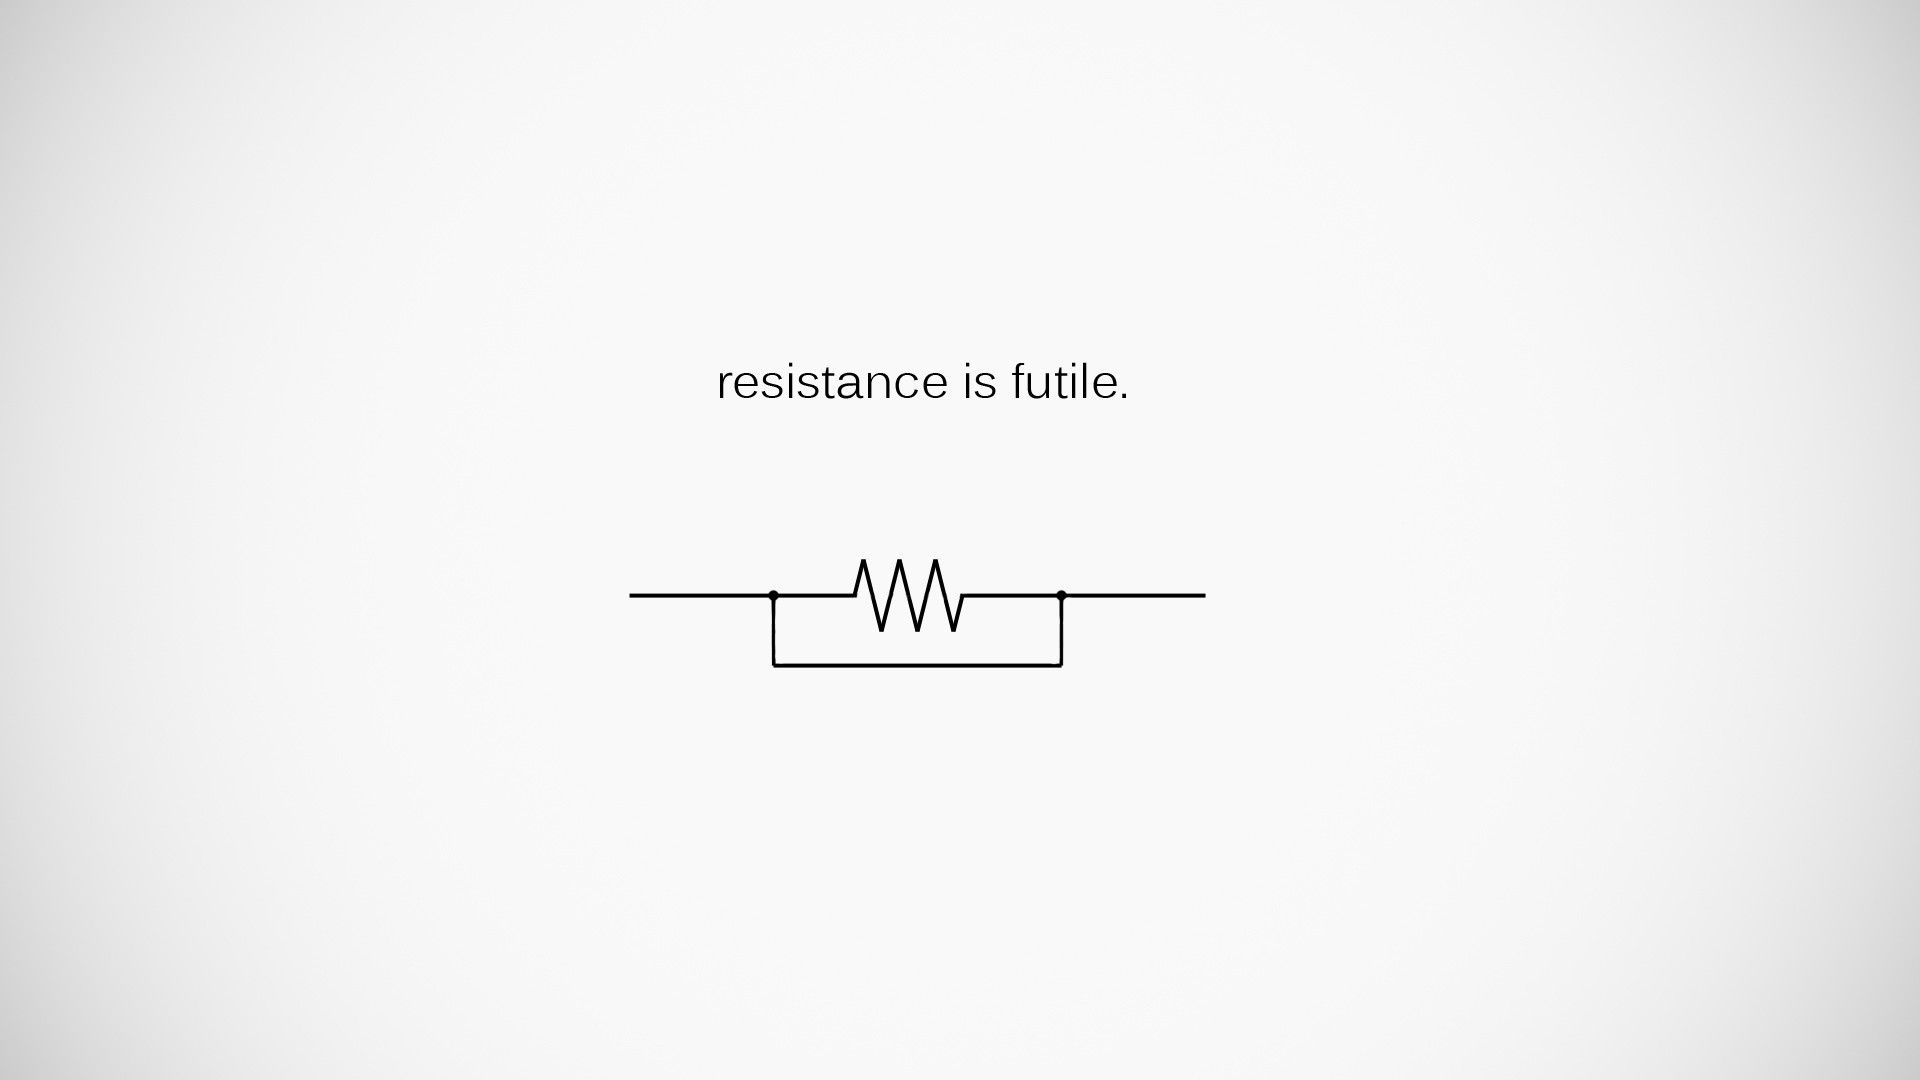 Minimalism Humor Electronics Quote Circuits Wallpaper Desktop Wallpapers Backgrounds 1080p Wallpaper Original Wallpaper